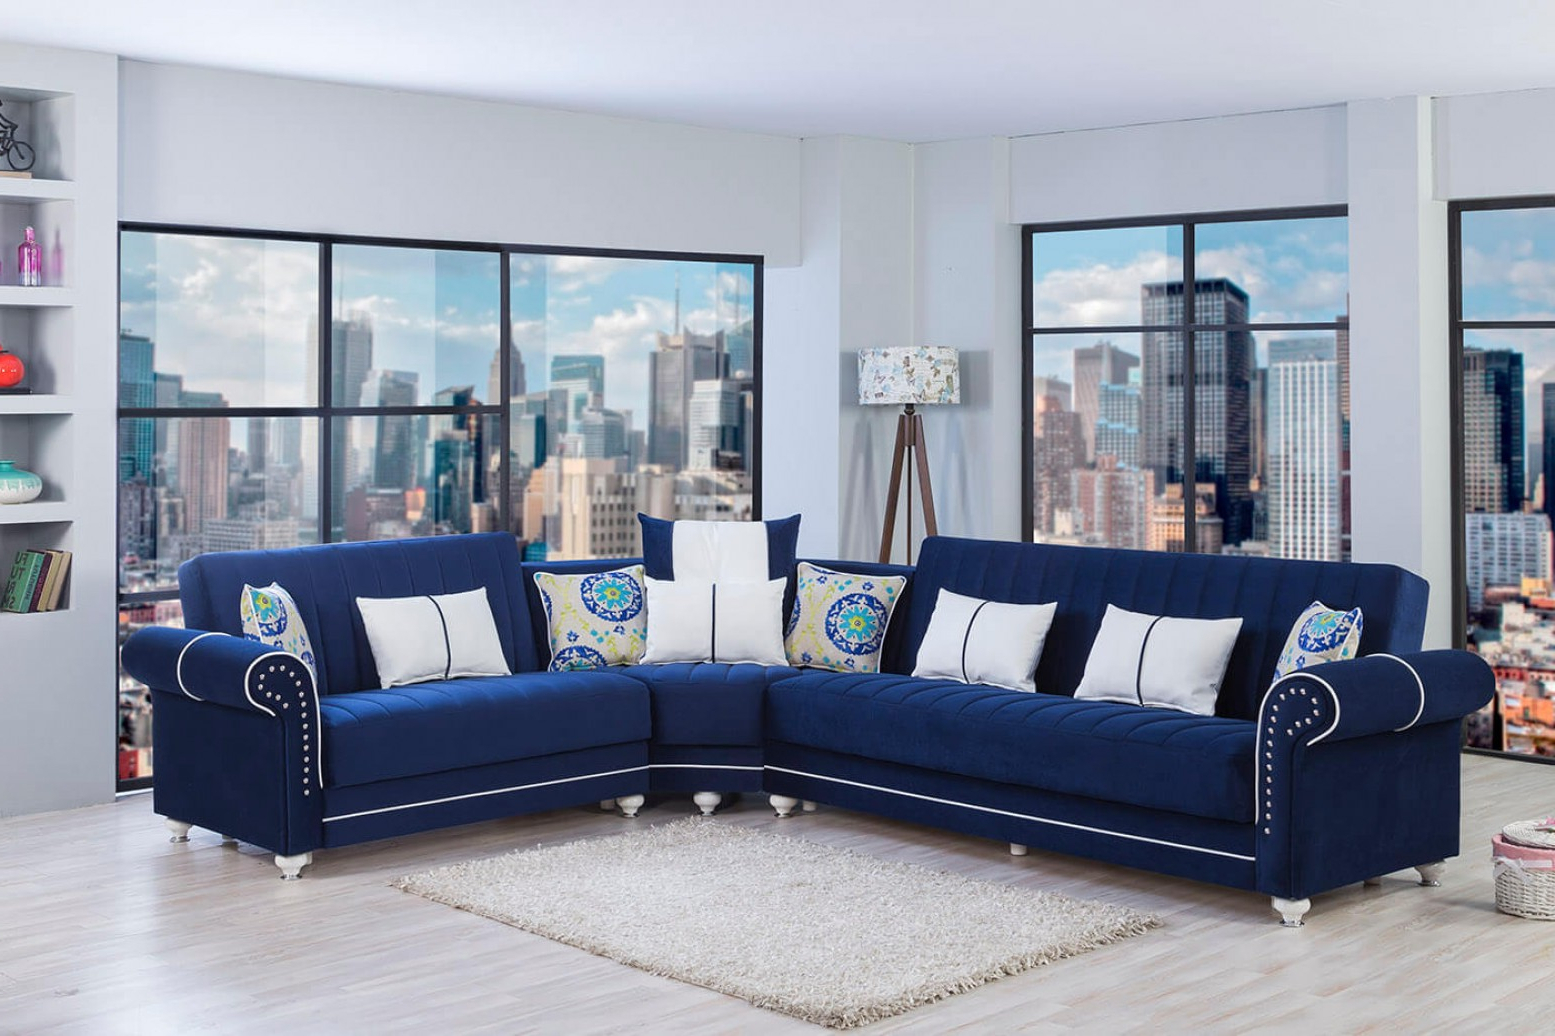 Navy Blue Microfiber Sectional Sofa Best Of Elliot Fabric With Well Known Dream Navy 2 Piece Modular Sofas (View 17 of 20)